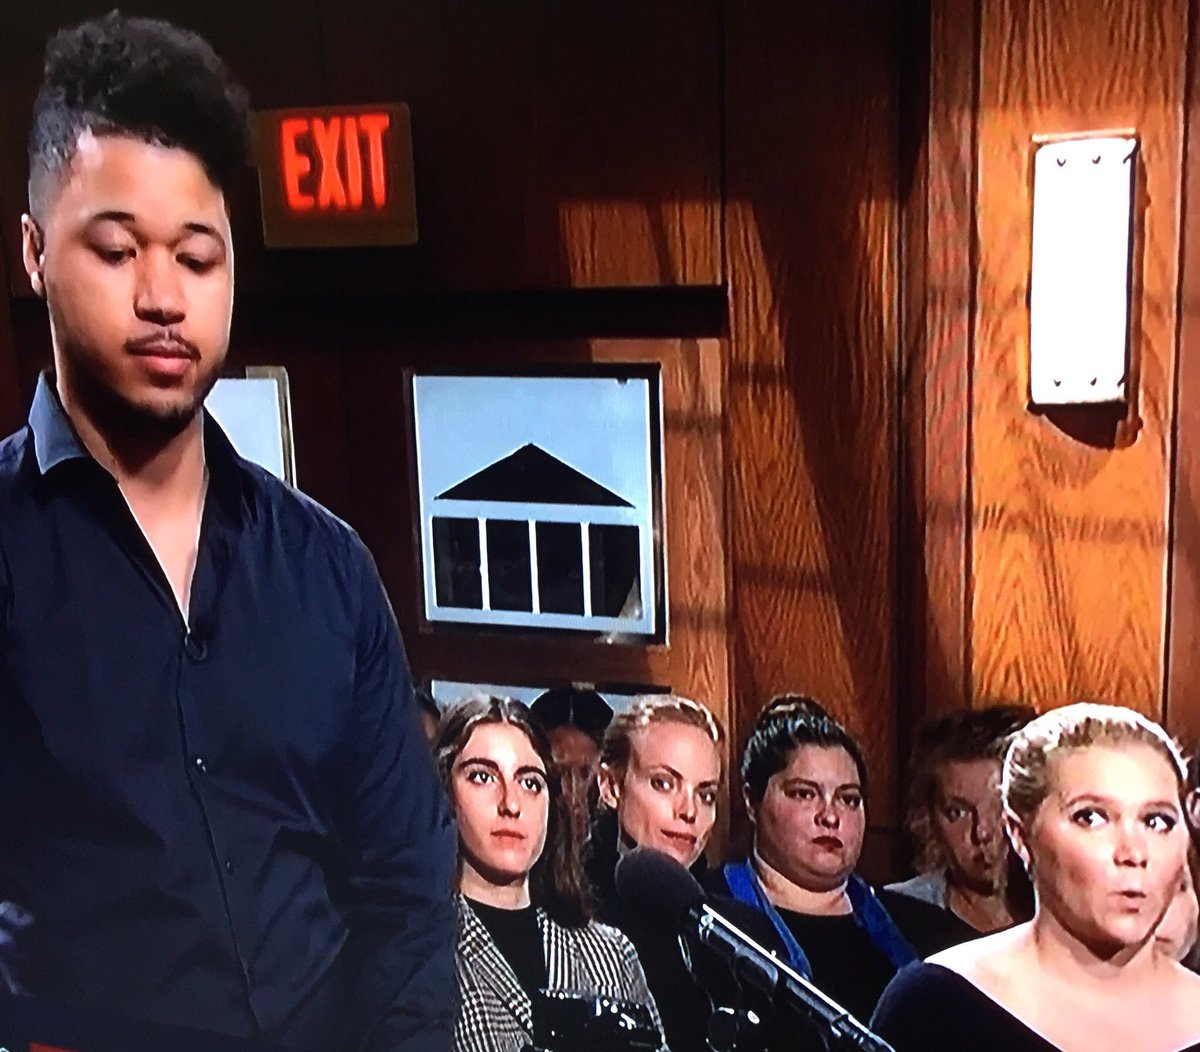 Order in the court! Please do not attempt to influence outcomes thru shocked facial expressions.